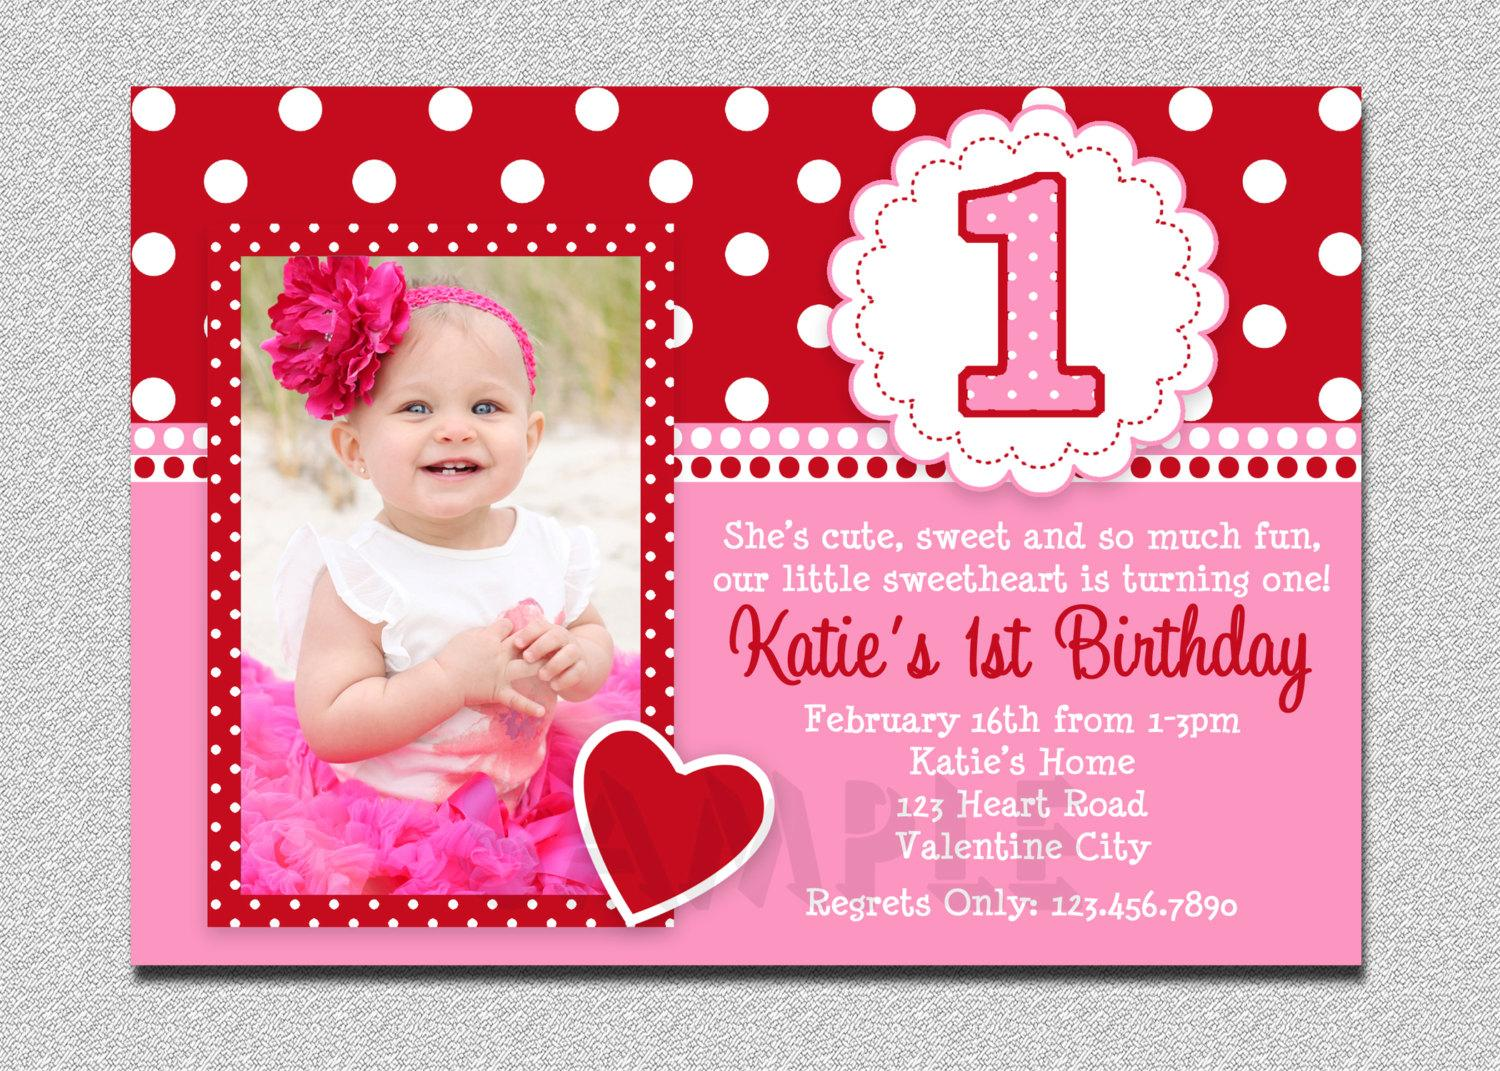 baby 1st birthday greeting message ; baby-1st-birthday-invitation-message-Of-Birthday-Invitations-Designed-pretty-2